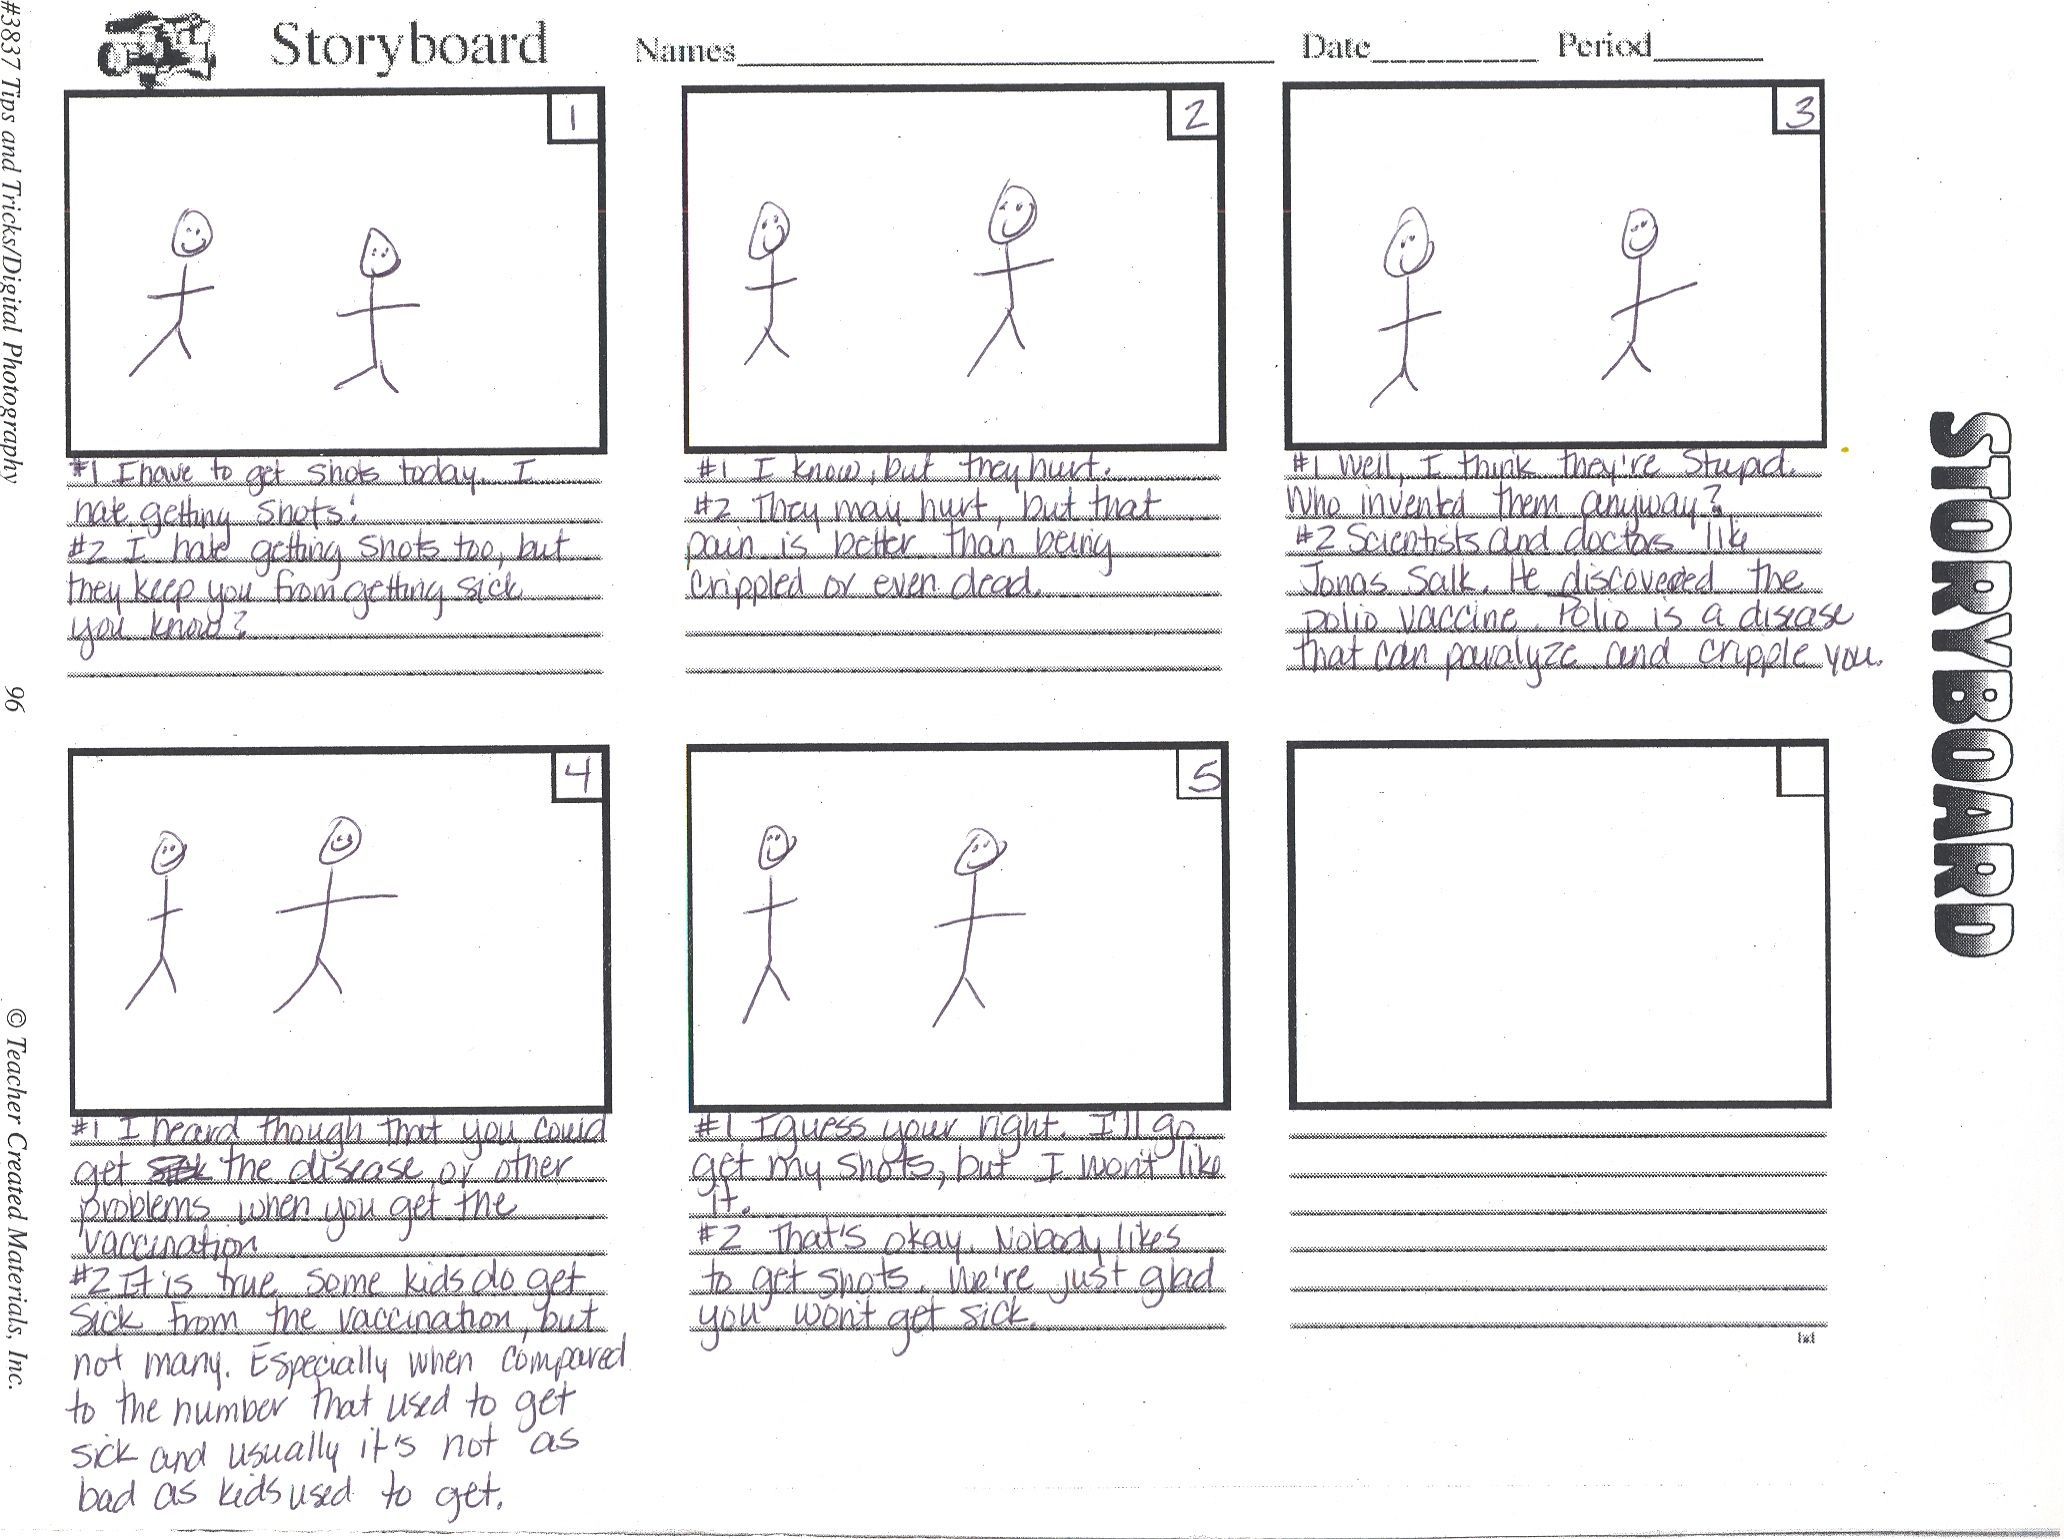 storyboard examples for kids not found